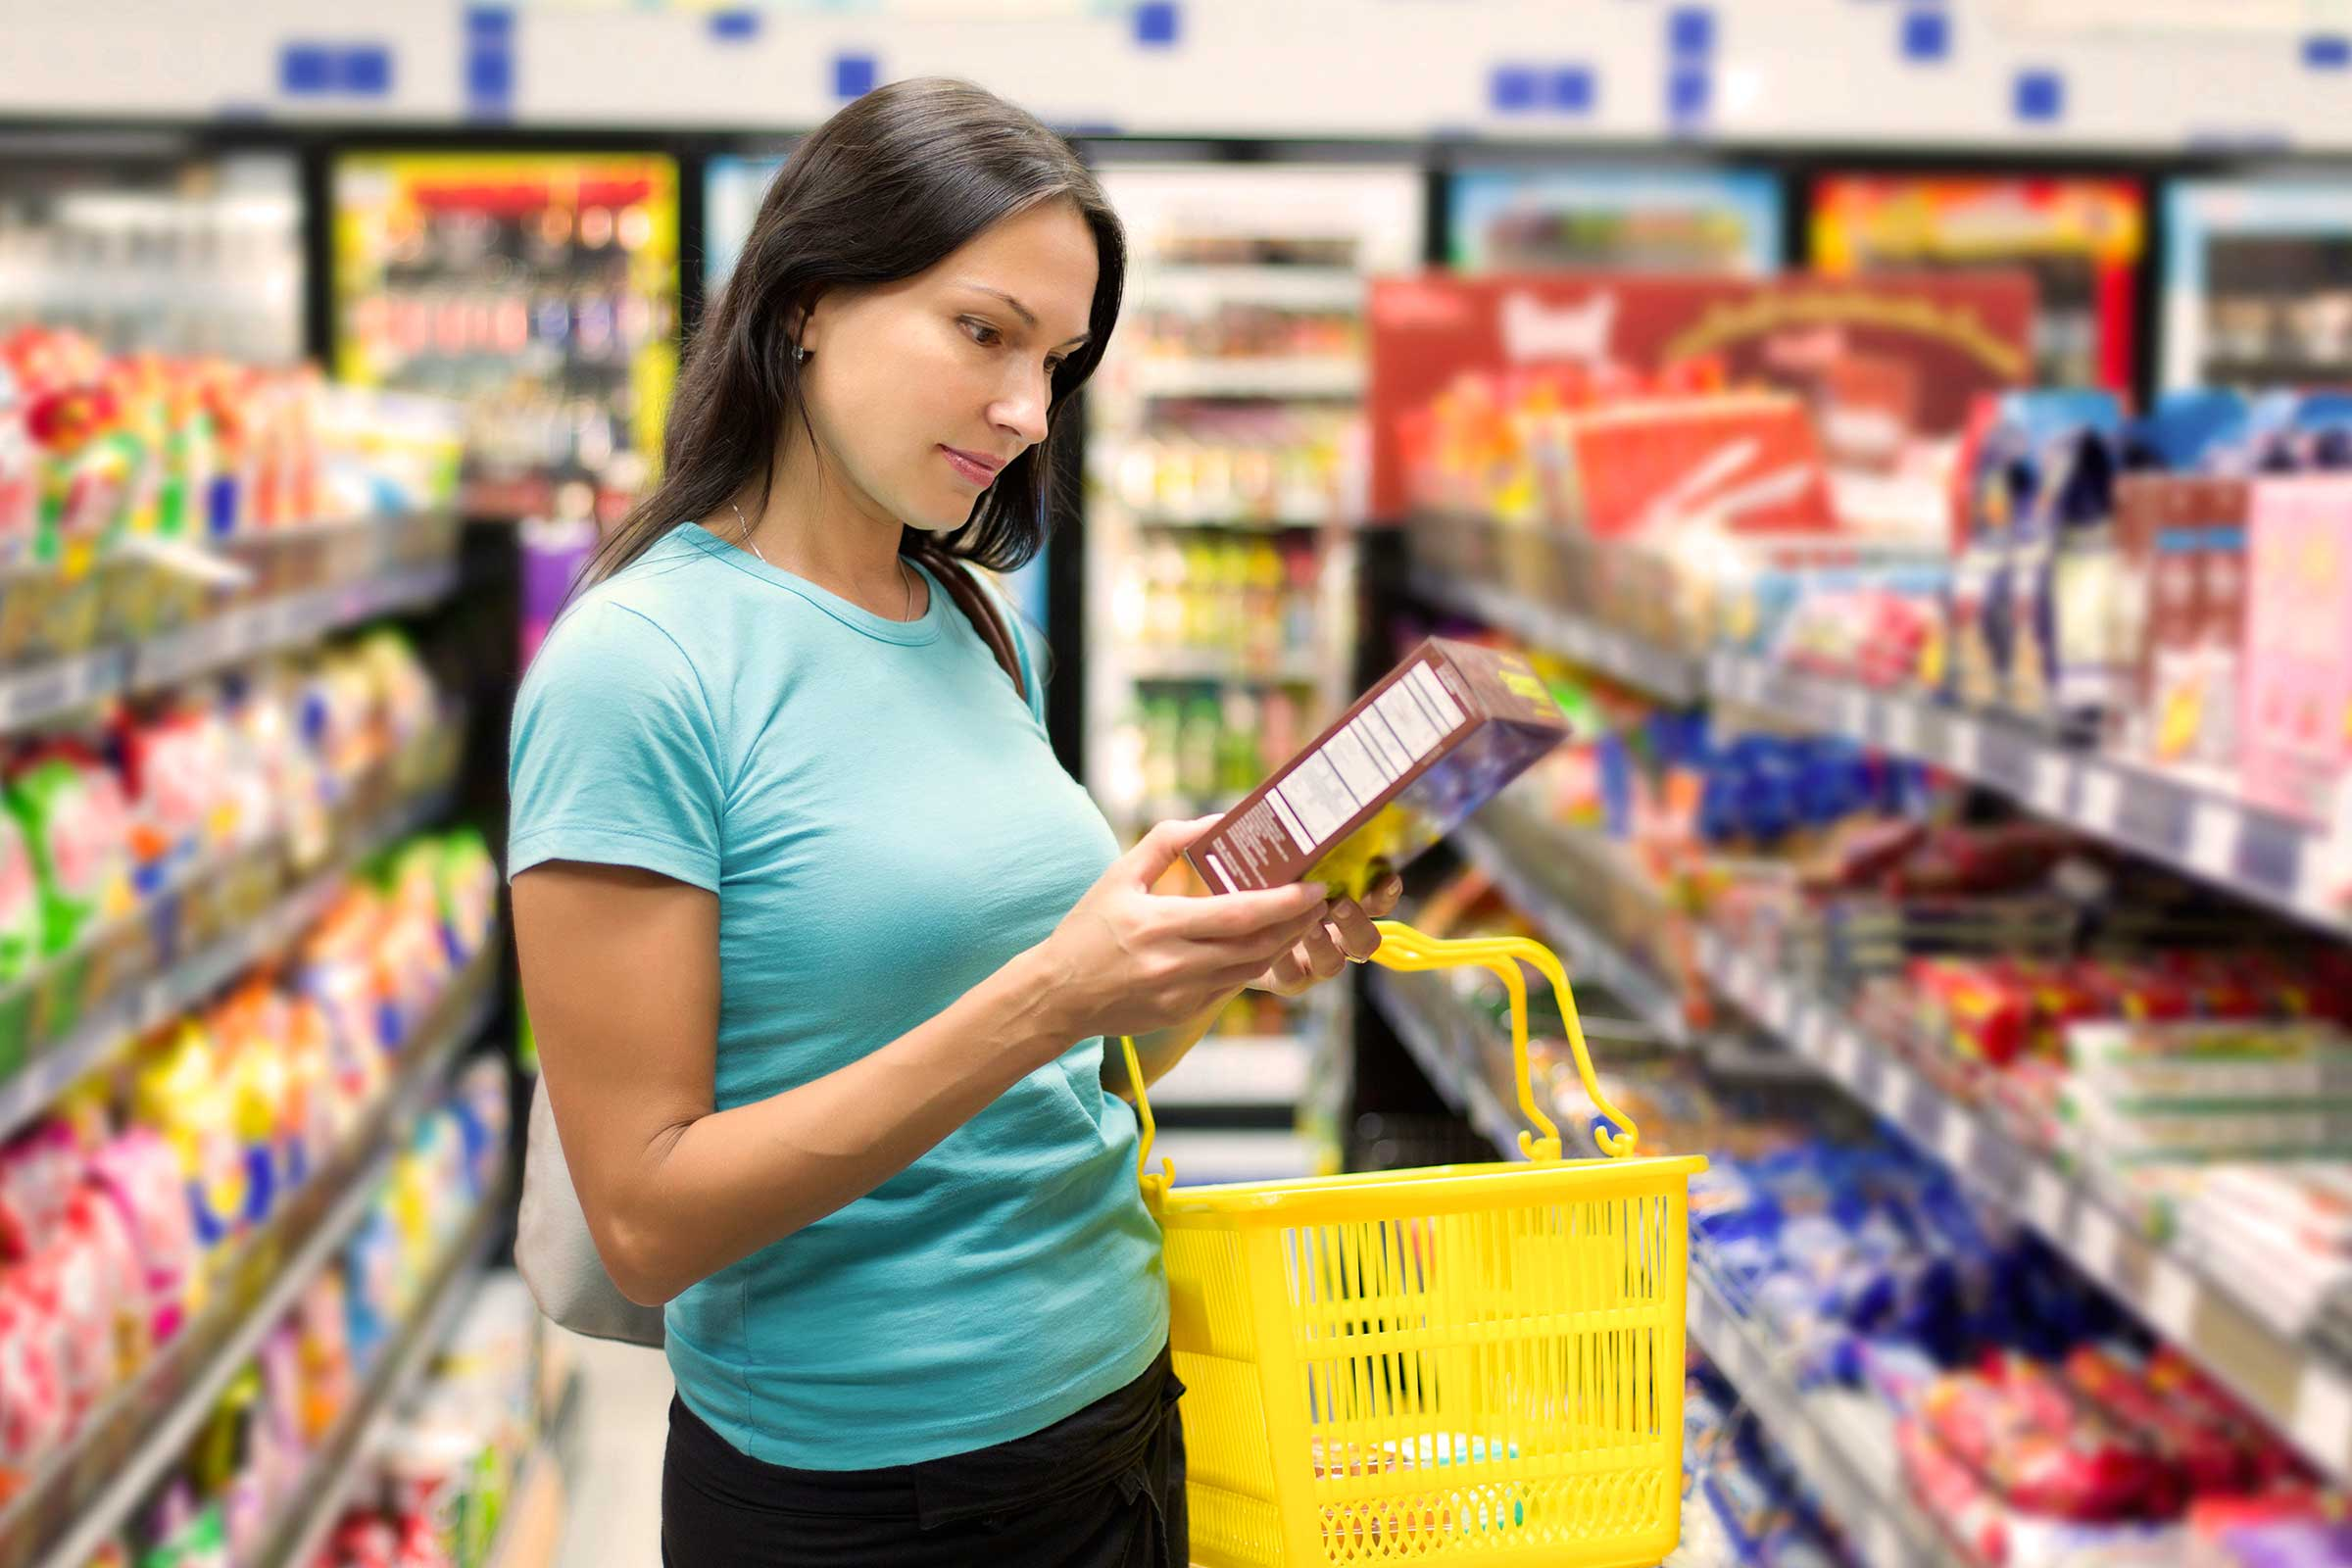 Possible Dangers of Food Additives To Health